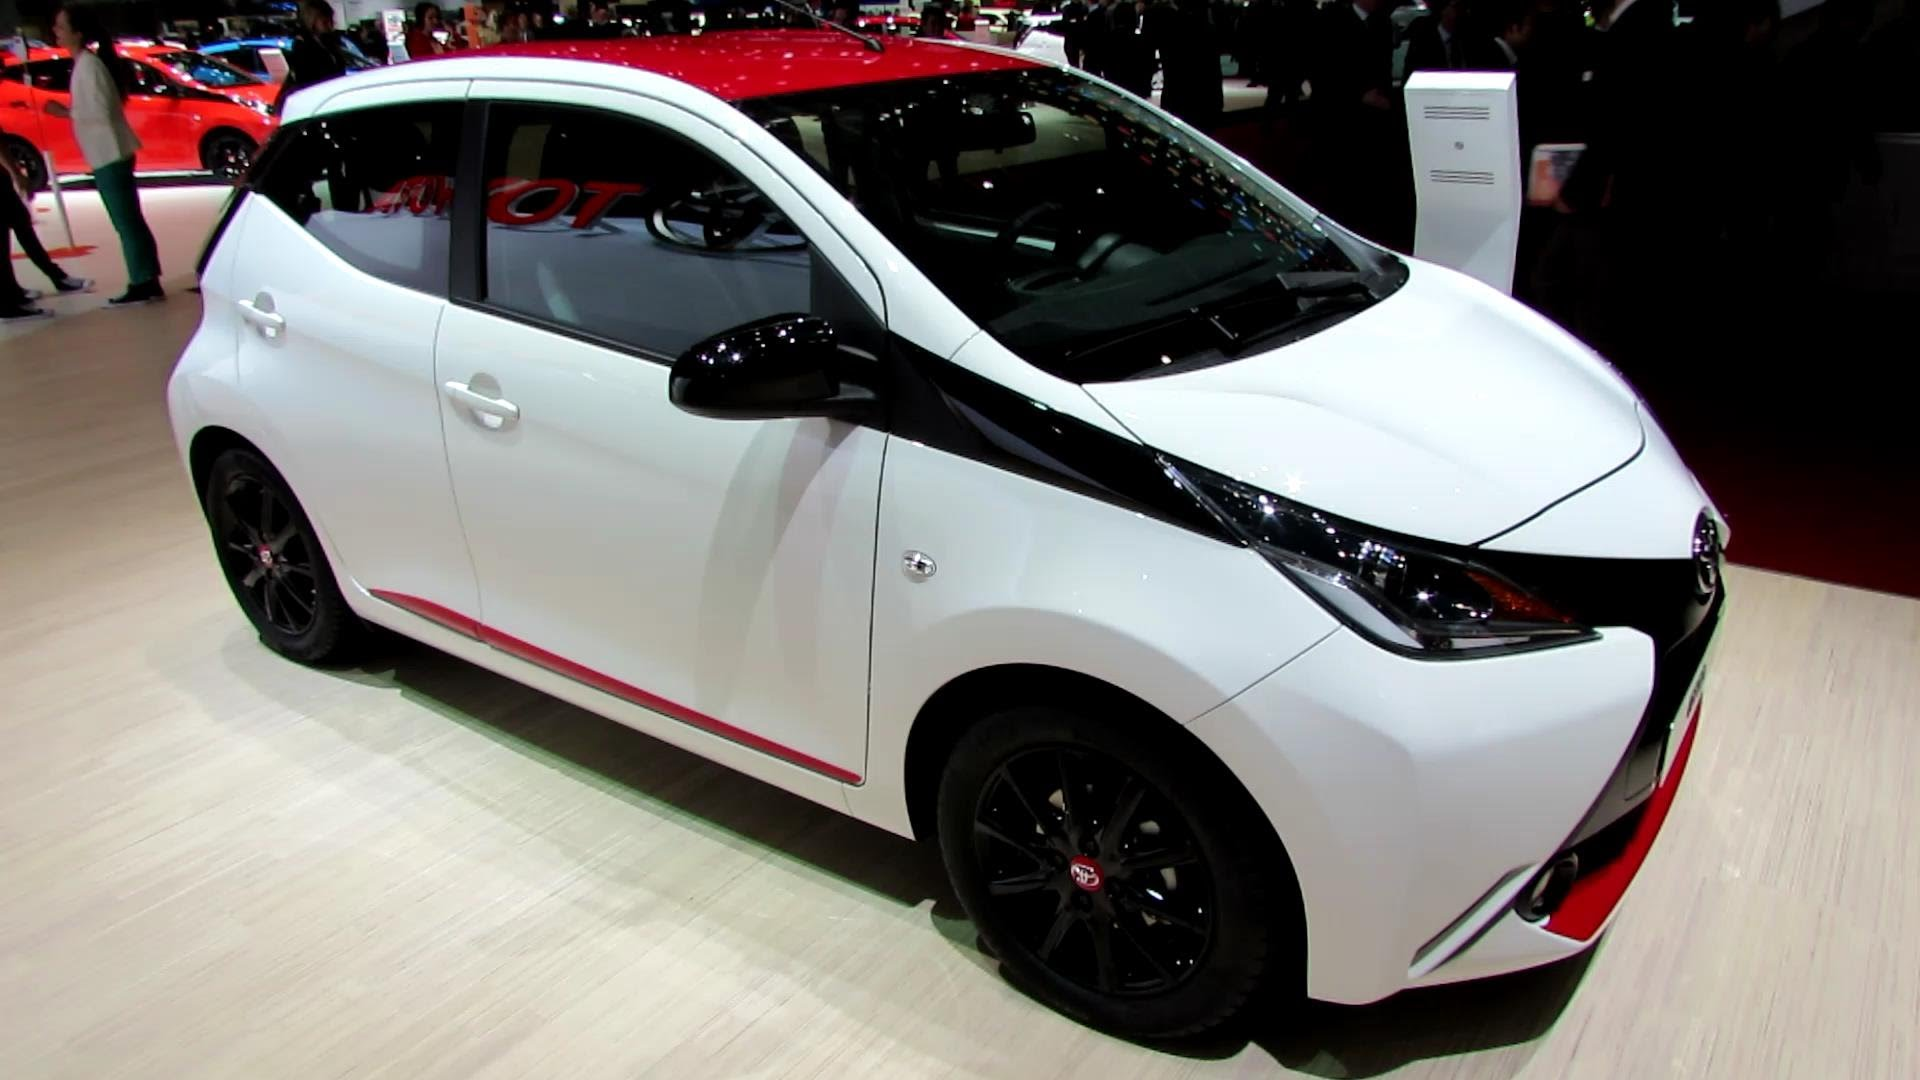 2015 Toyota Aygo x-Play - Exterior and Interior Walkaround - Debut at 2014 Geneva Motor Show